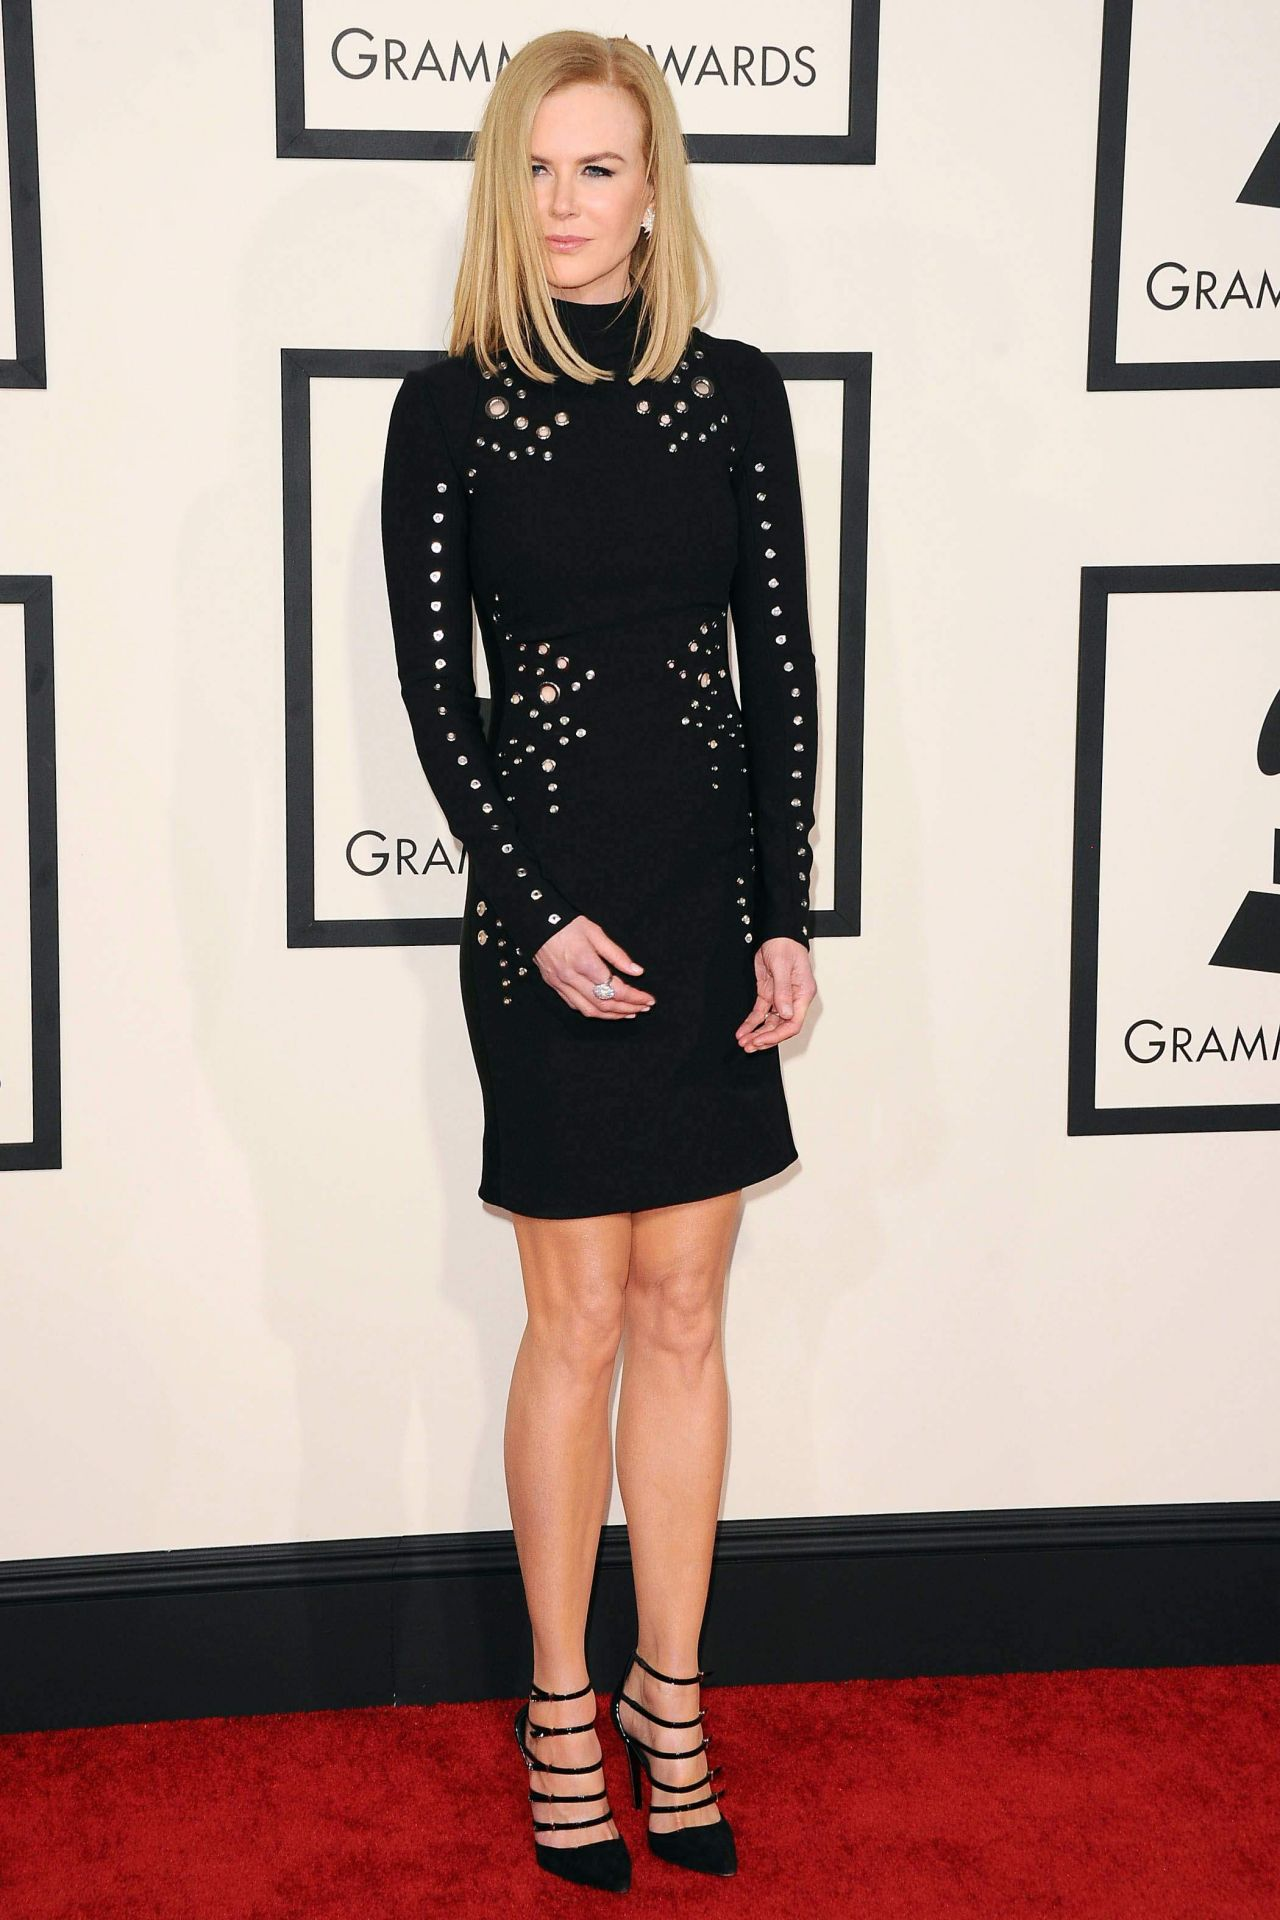 Nicole Kidman - 2015 Grammy Awards in Los Angeles